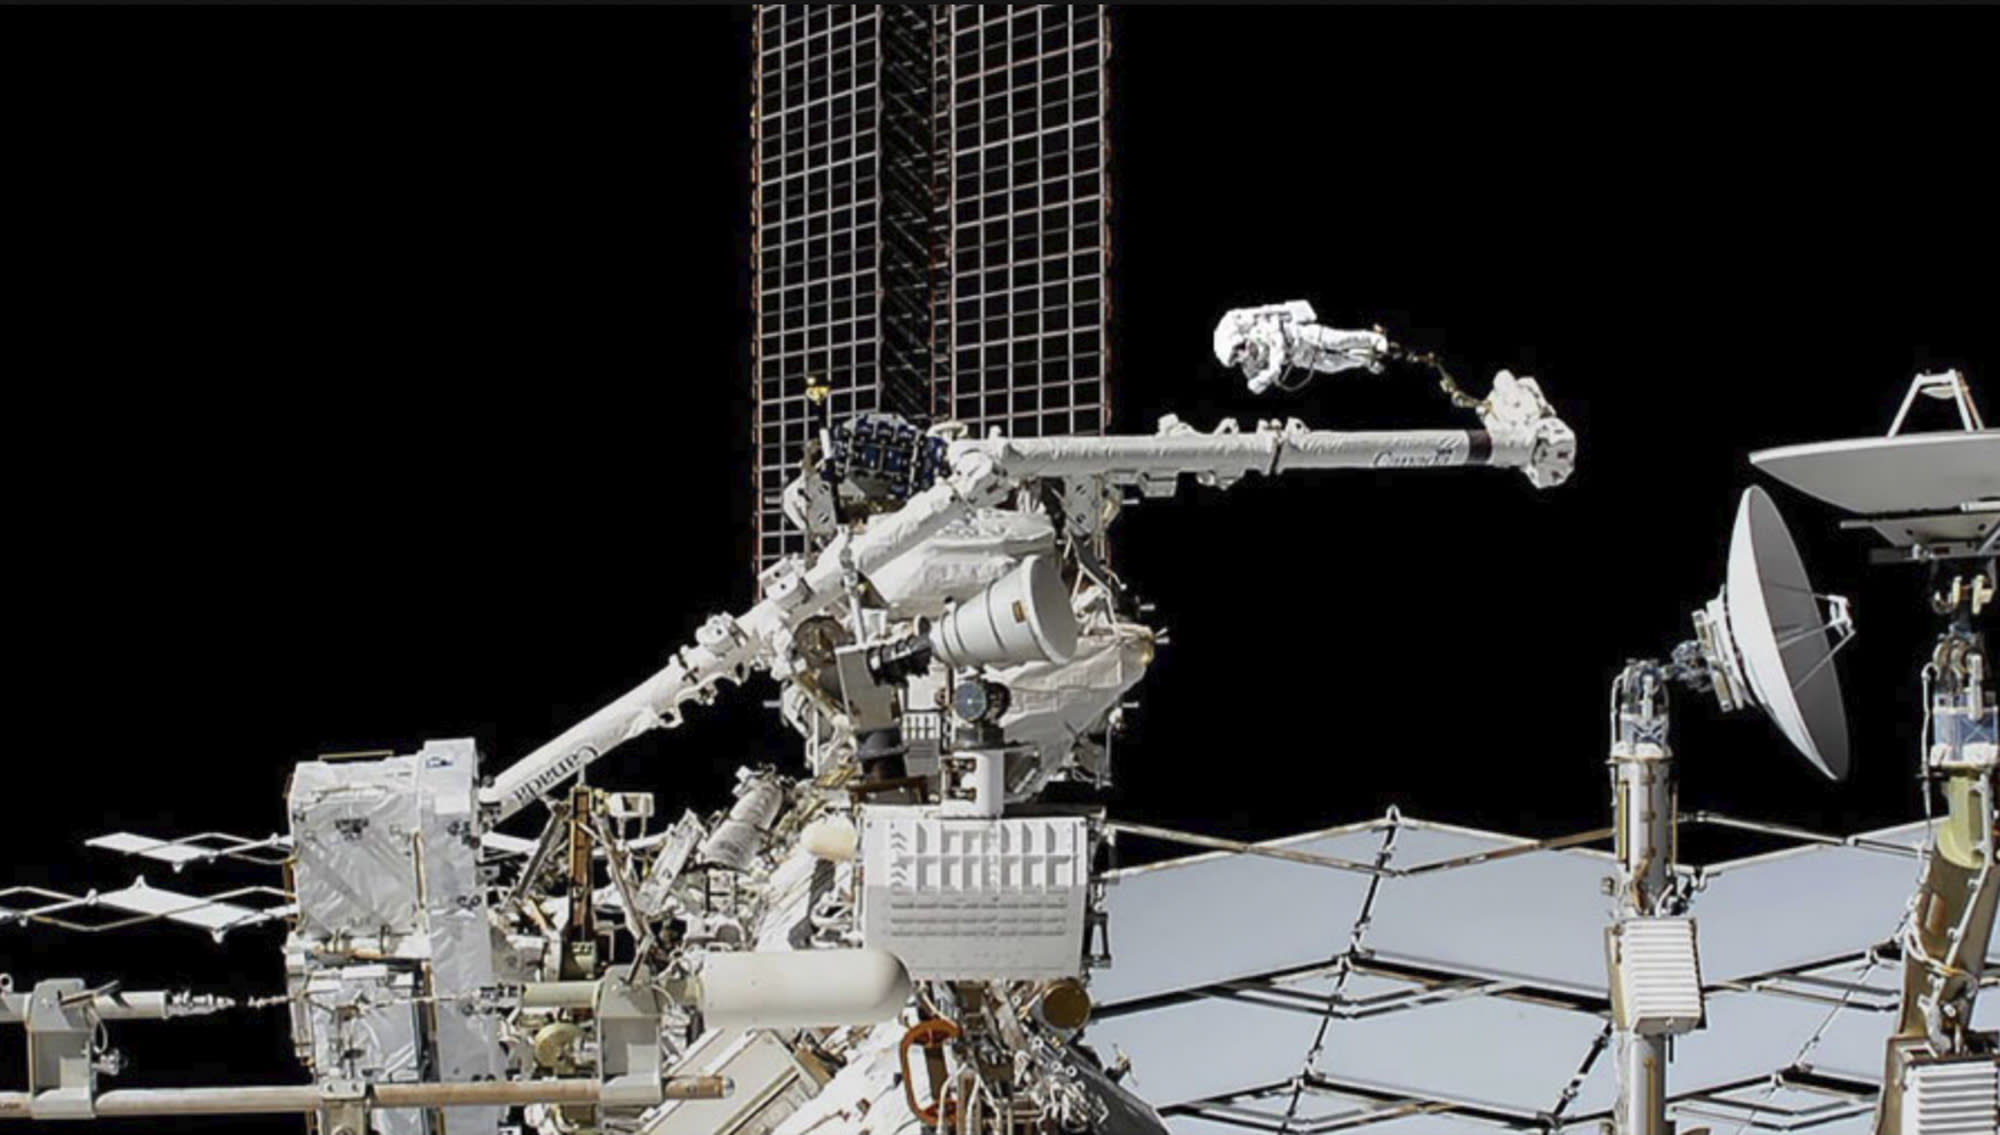 Spacewalking astronauts cutting into cosmic ray detector